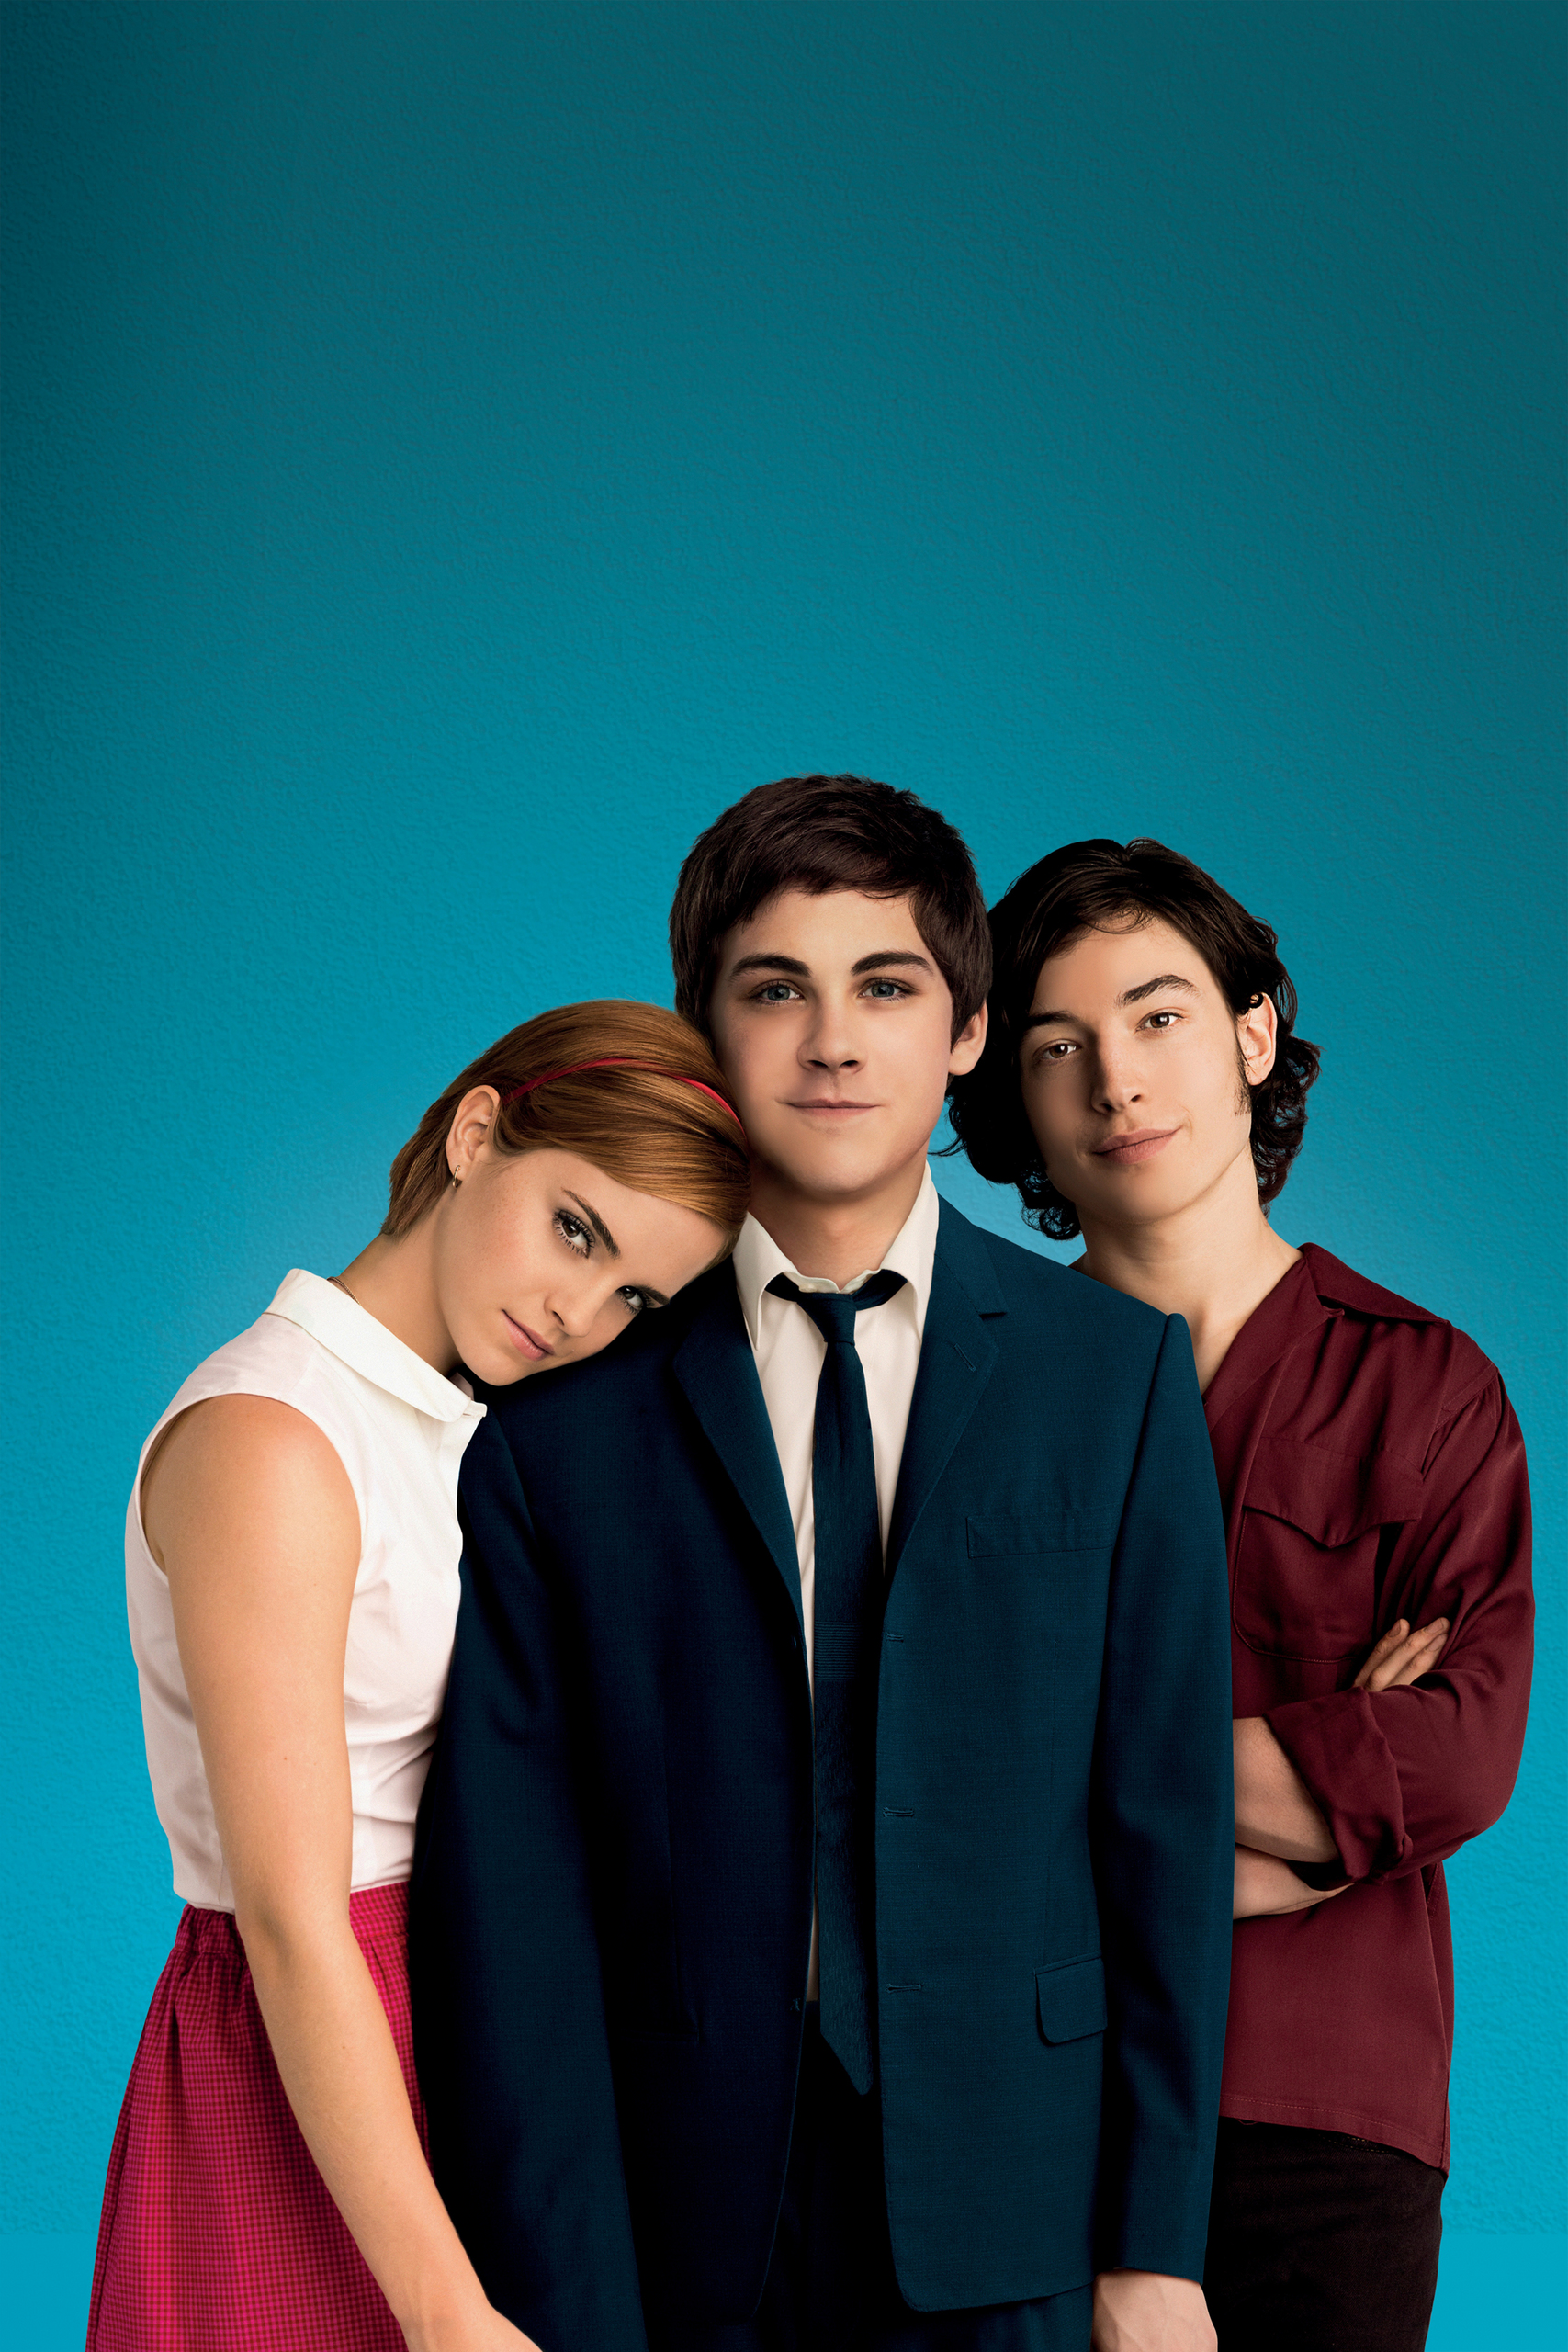 The Perks of Being a Wallflower - Promo Photoshoot [HQ ... Logan Lerman Perks Of Being A Wallflower Photoshoot